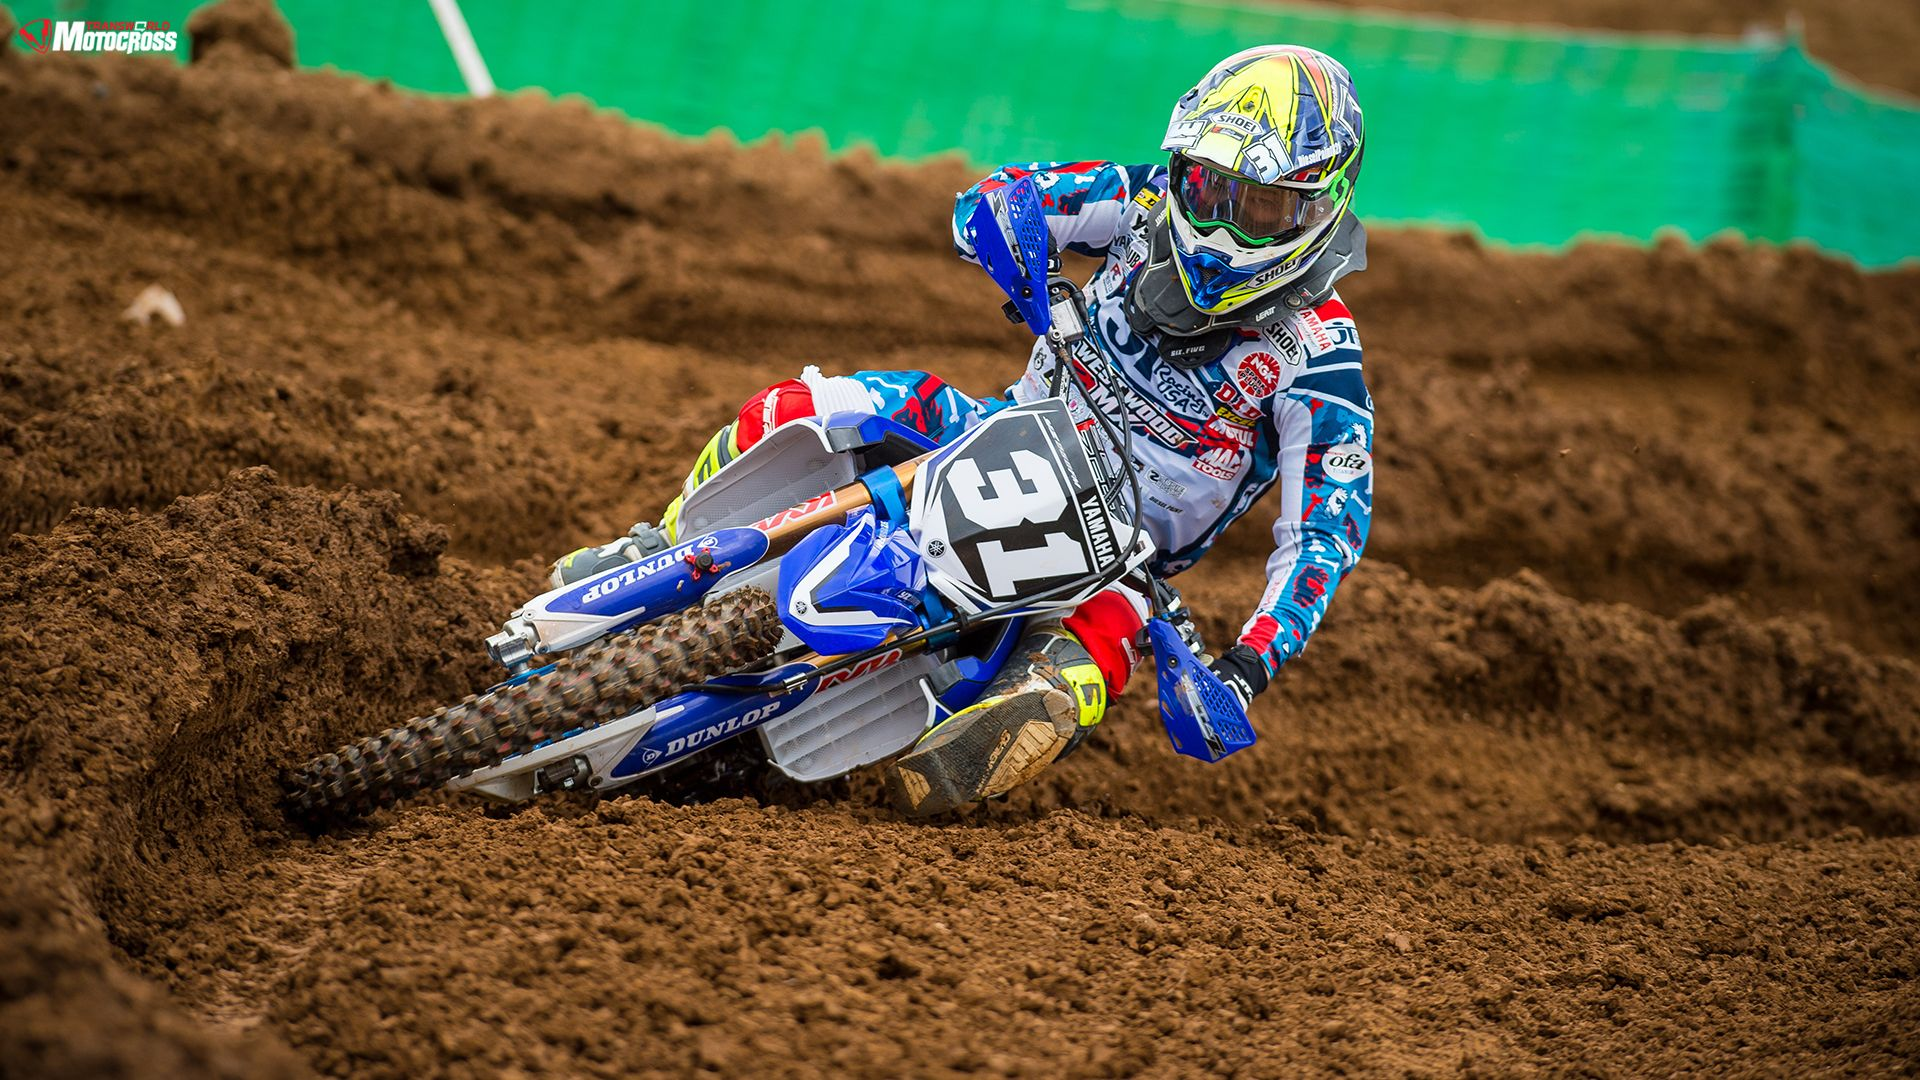 Top Free Motocross Backgrounds